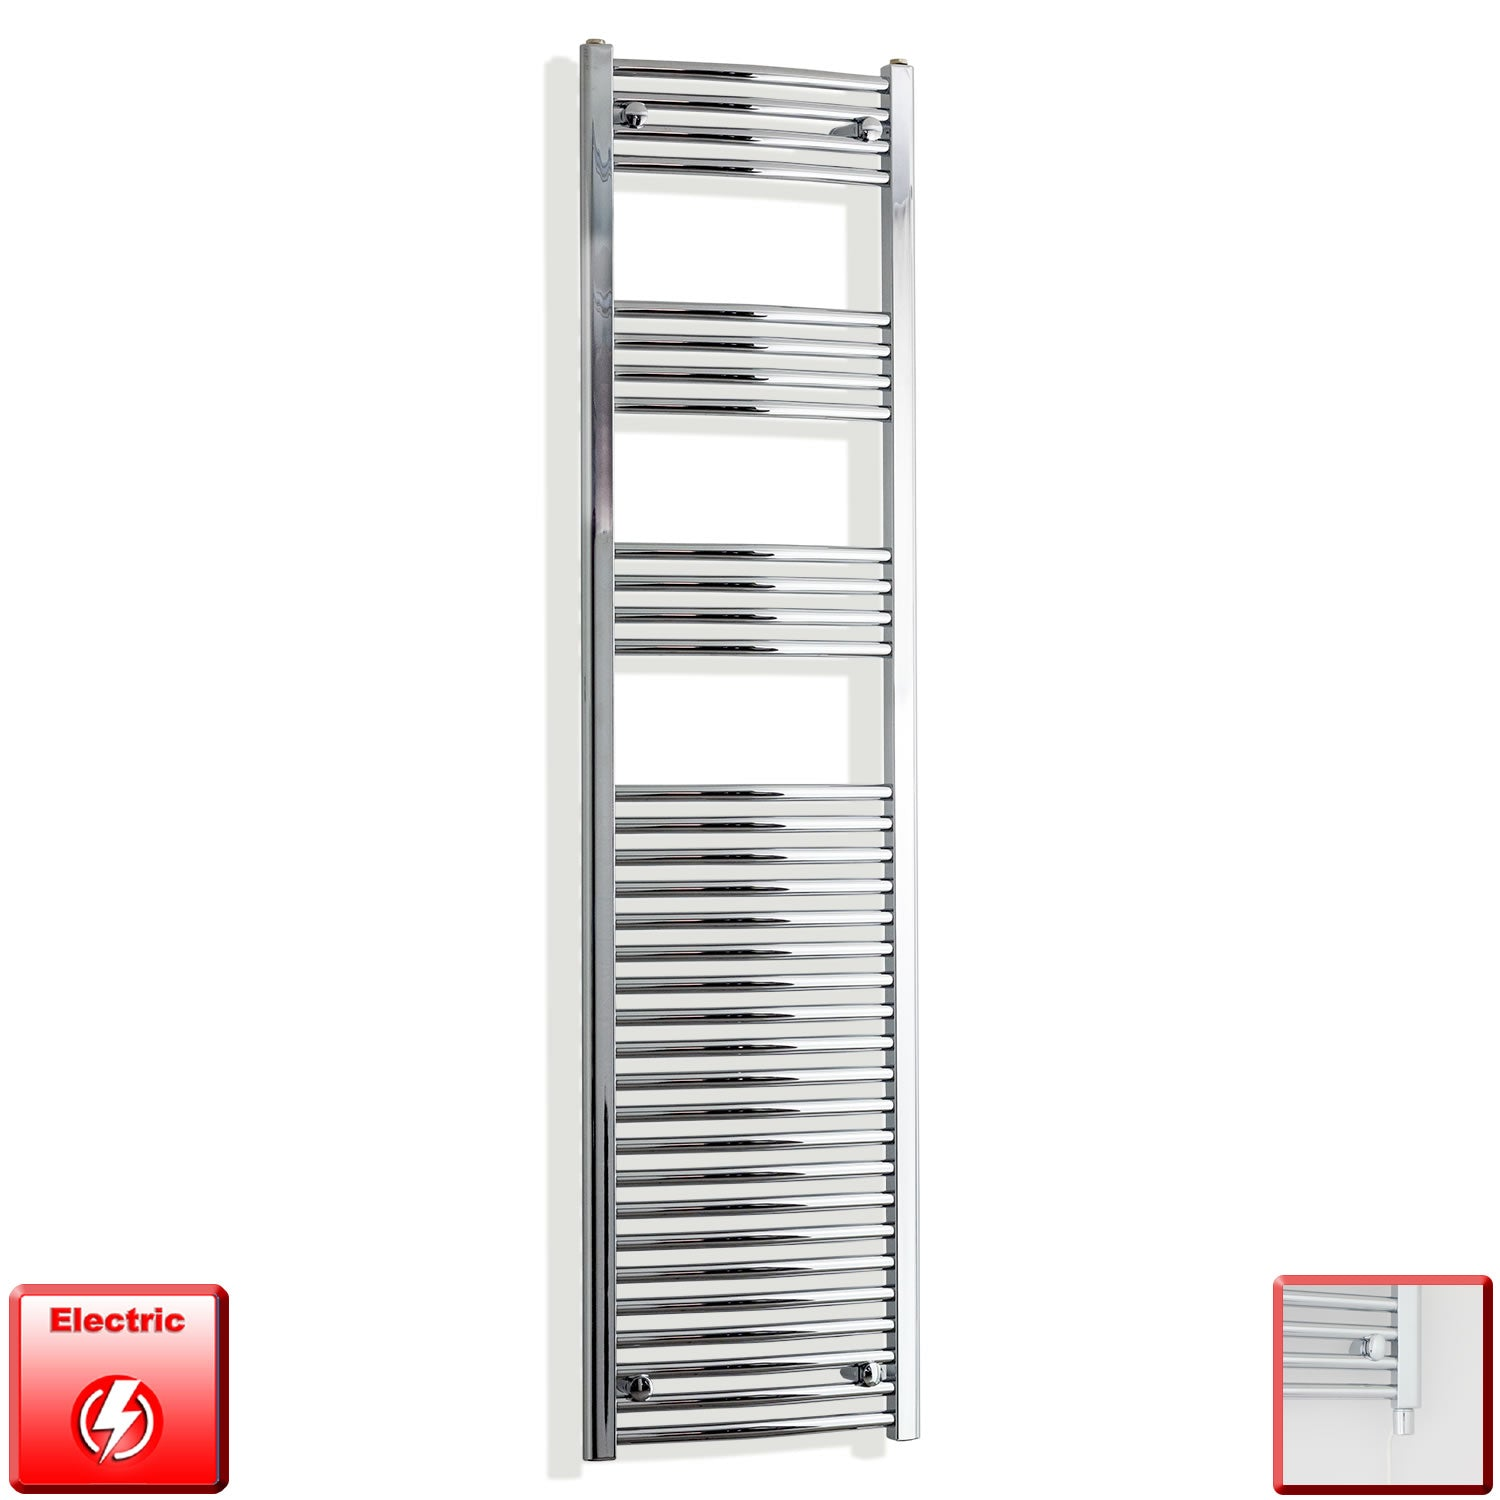 450mm Wide 1800mm High Pre-Filled Chrome Electric Towel Rail Radiator With Single Heat Element